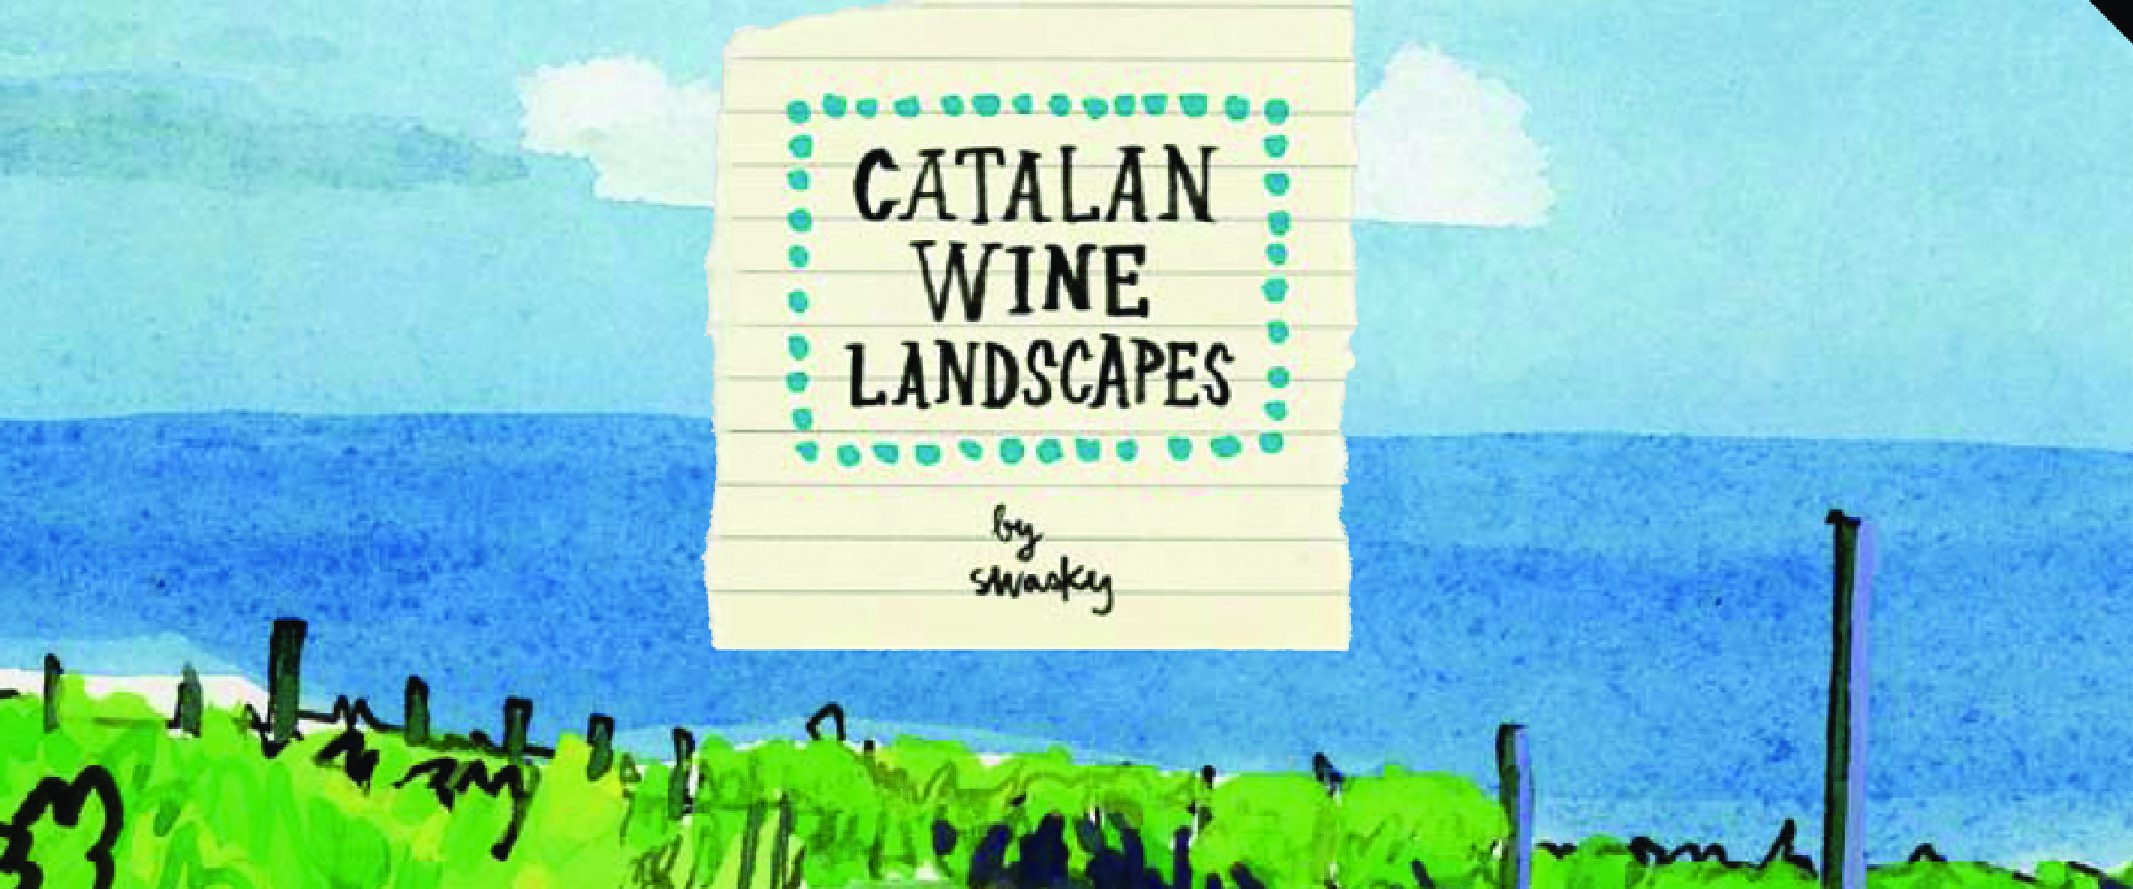 Catalan Wine Landscapes - Zahorí Books